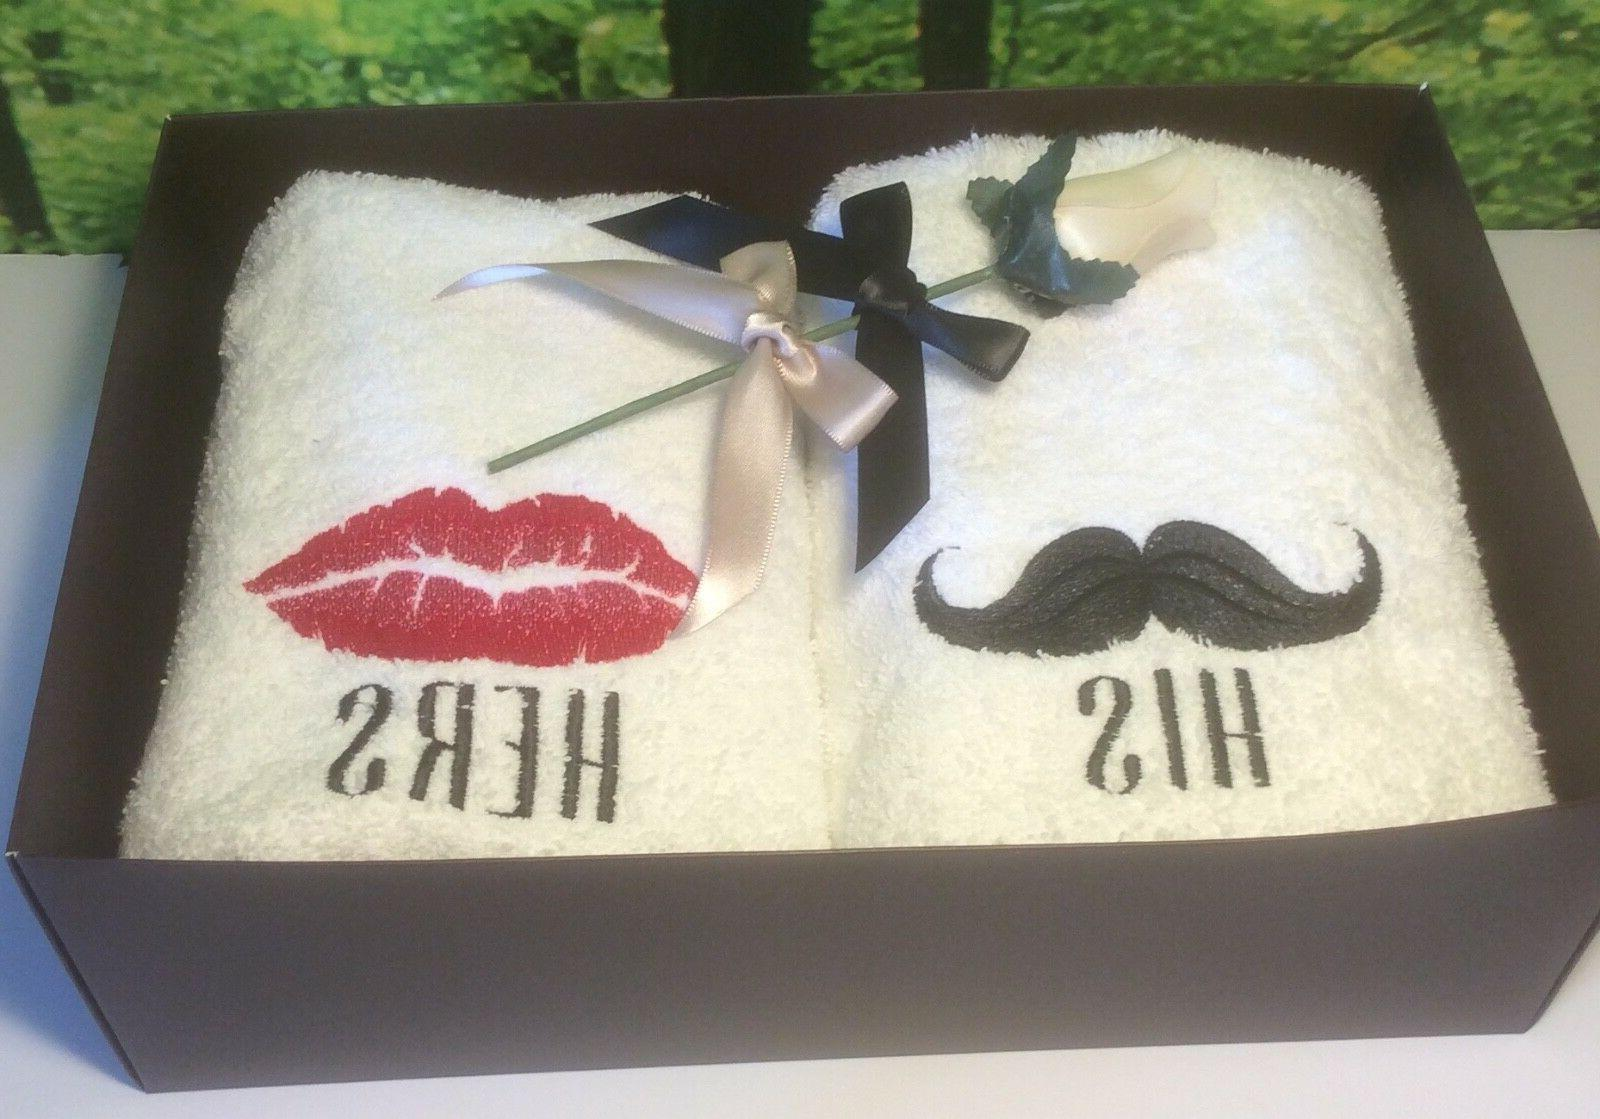 His Anniversary/Wedding Hand Towel His and Hers Towel Sets